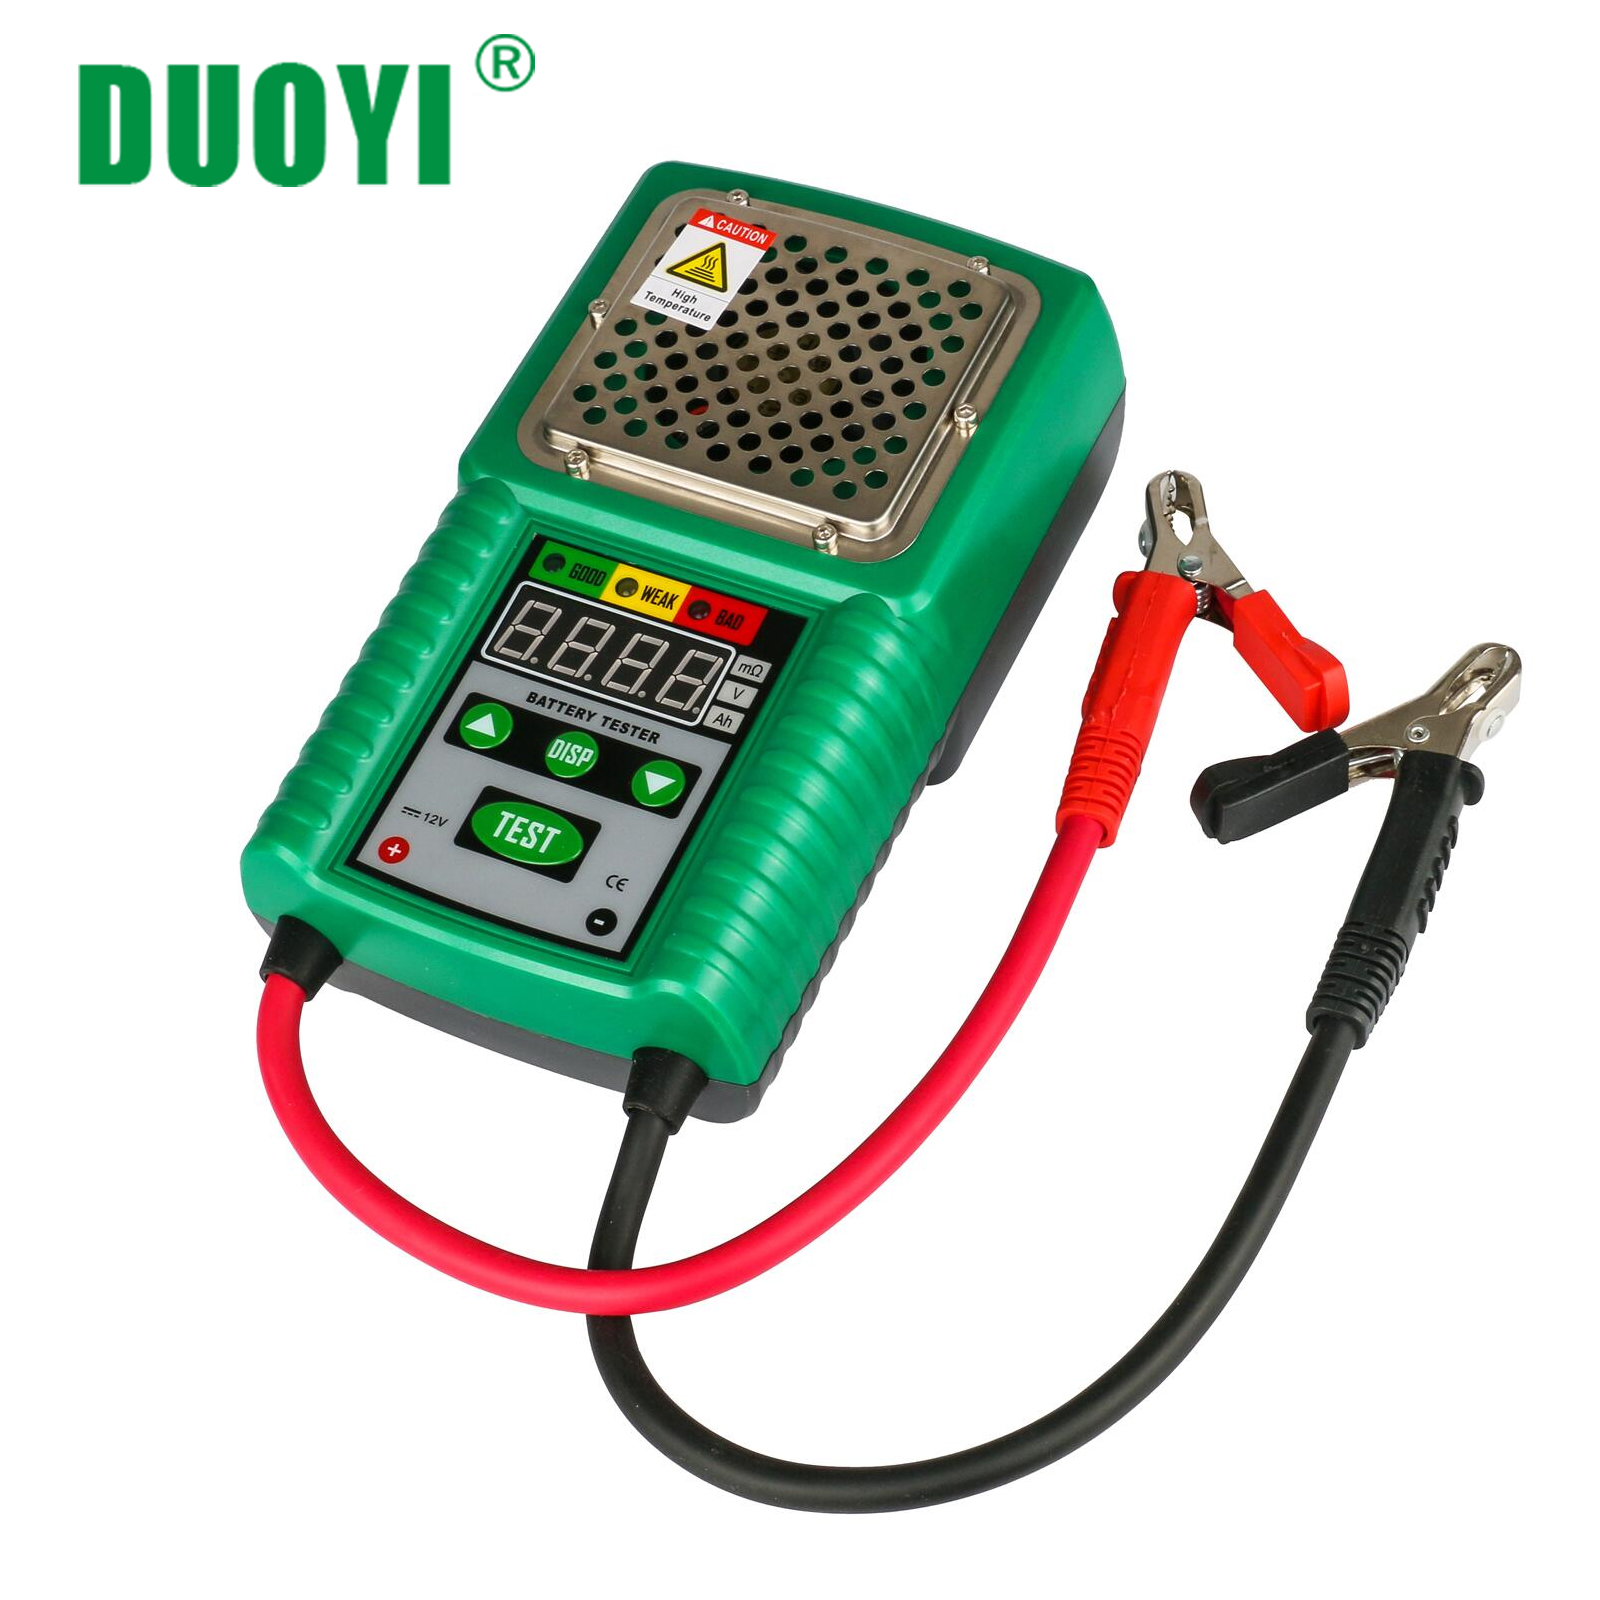 DUOYI DY226 Automotive Battery Tester 6V and 12V DC 4 Digits Display for UPS Battery Solar Energy Storage Battery Marine Battery